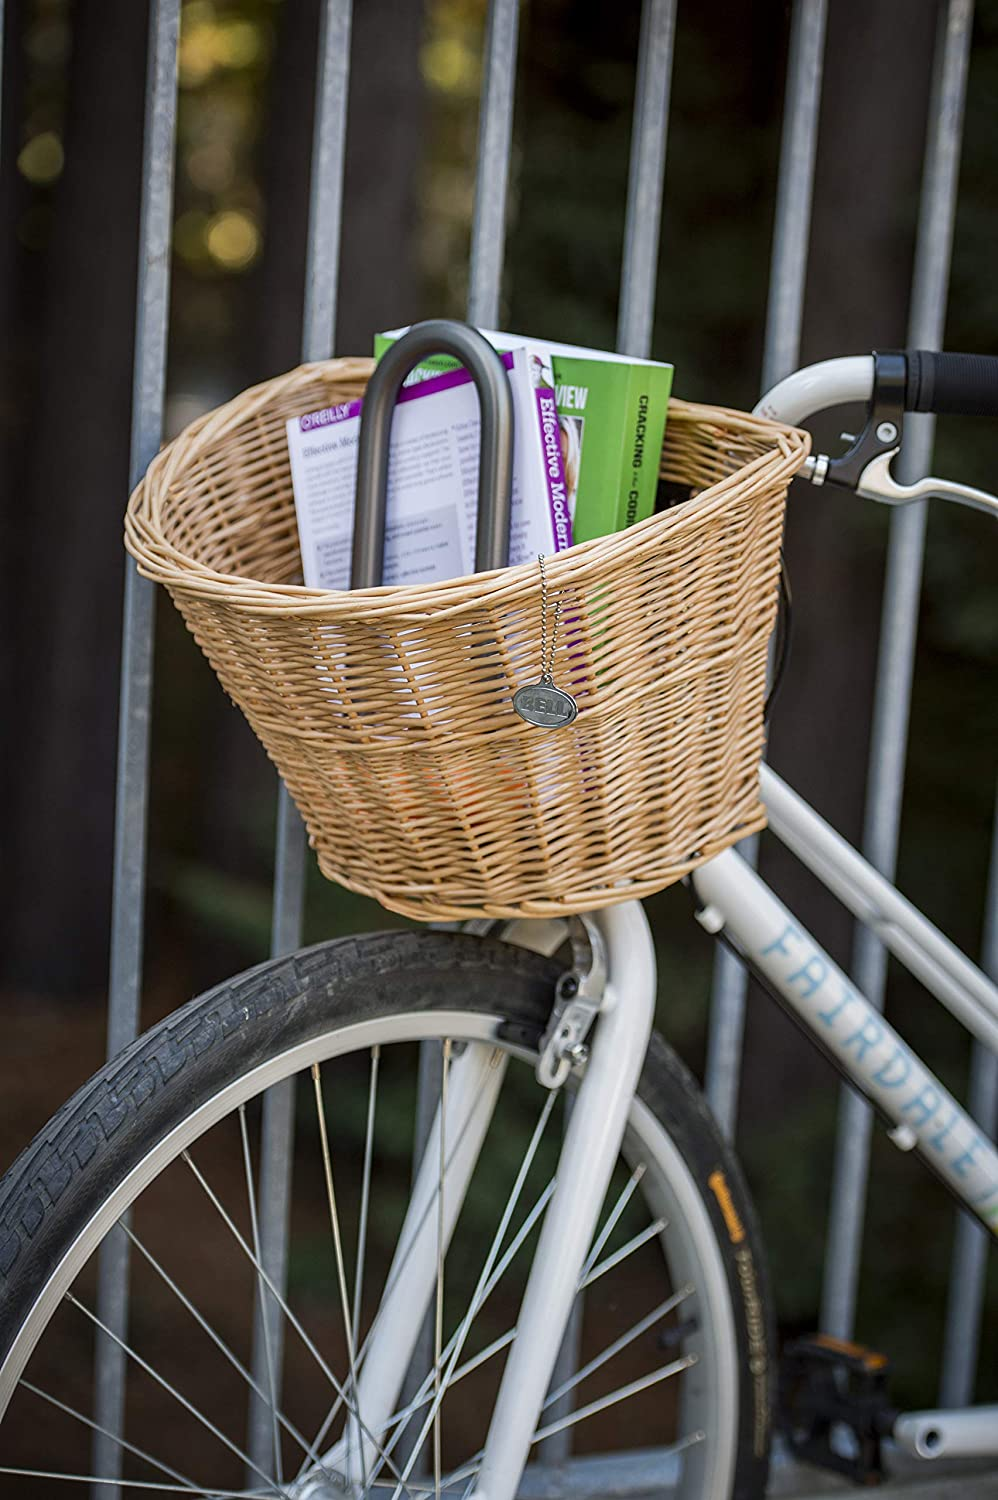 Bell Tote Series Bicycle Baskets